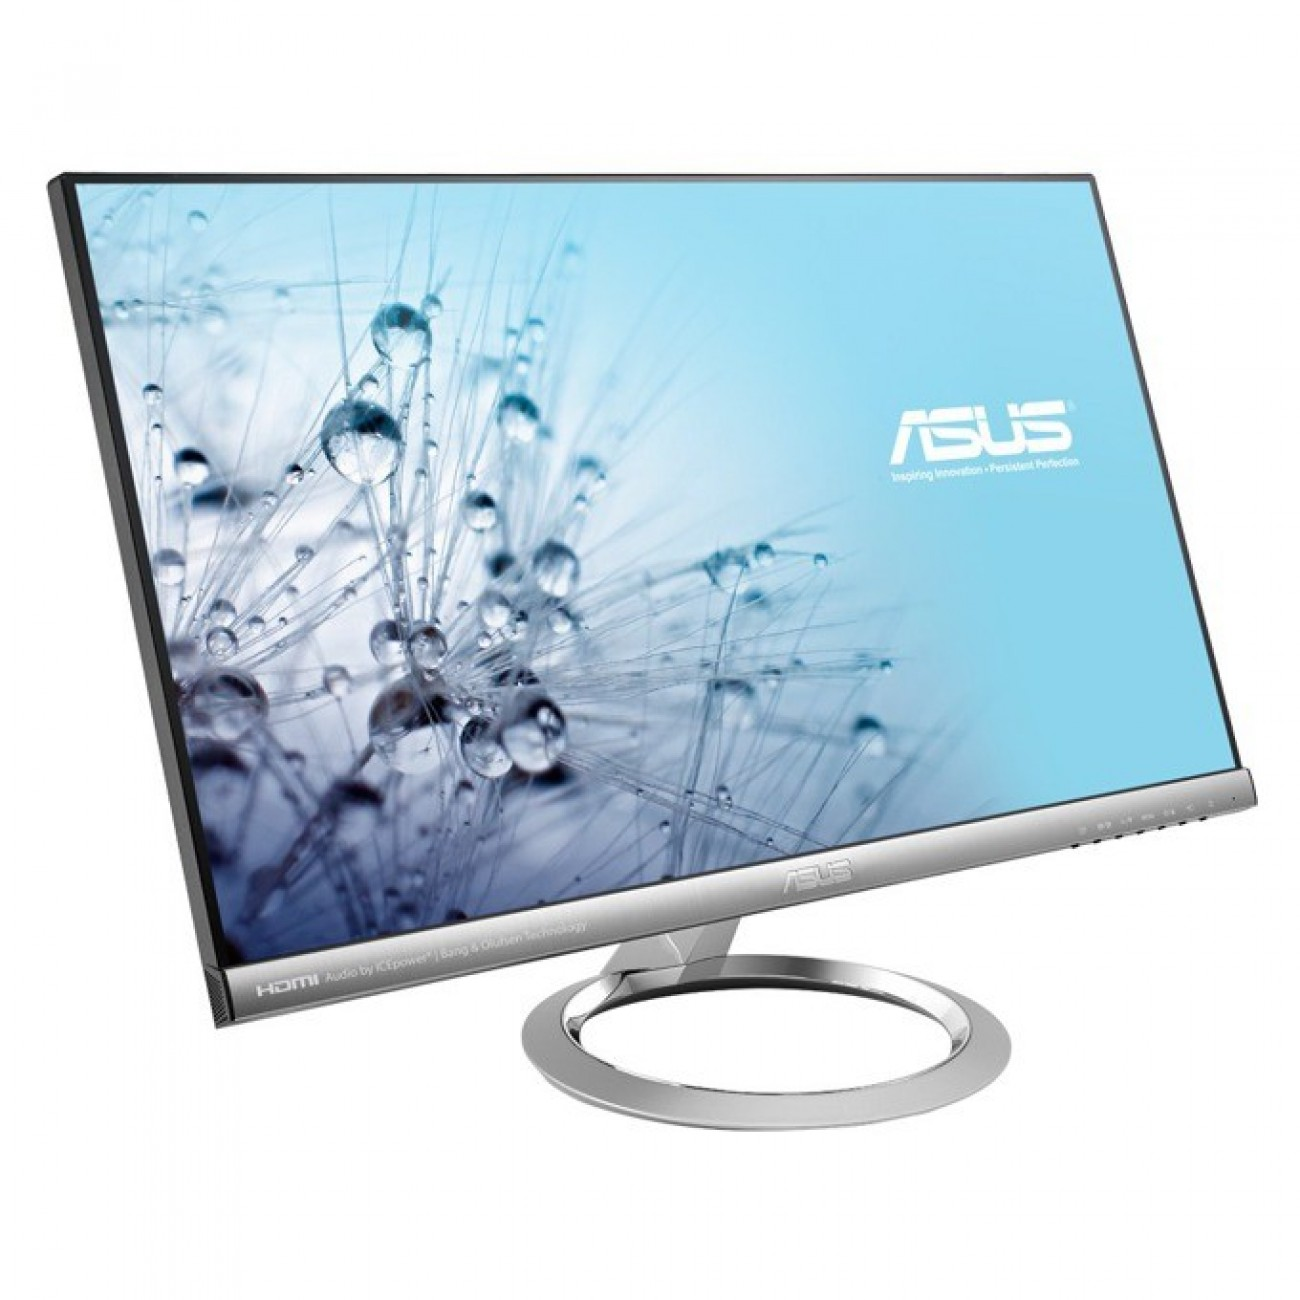 Монитор Asus MX259H, 25 (63.50 cm) AH-IPS панел, Full HD, 5 ms, 80 000 000:1, 250 cd/m2, HDMI в Монитори -  | Alleop